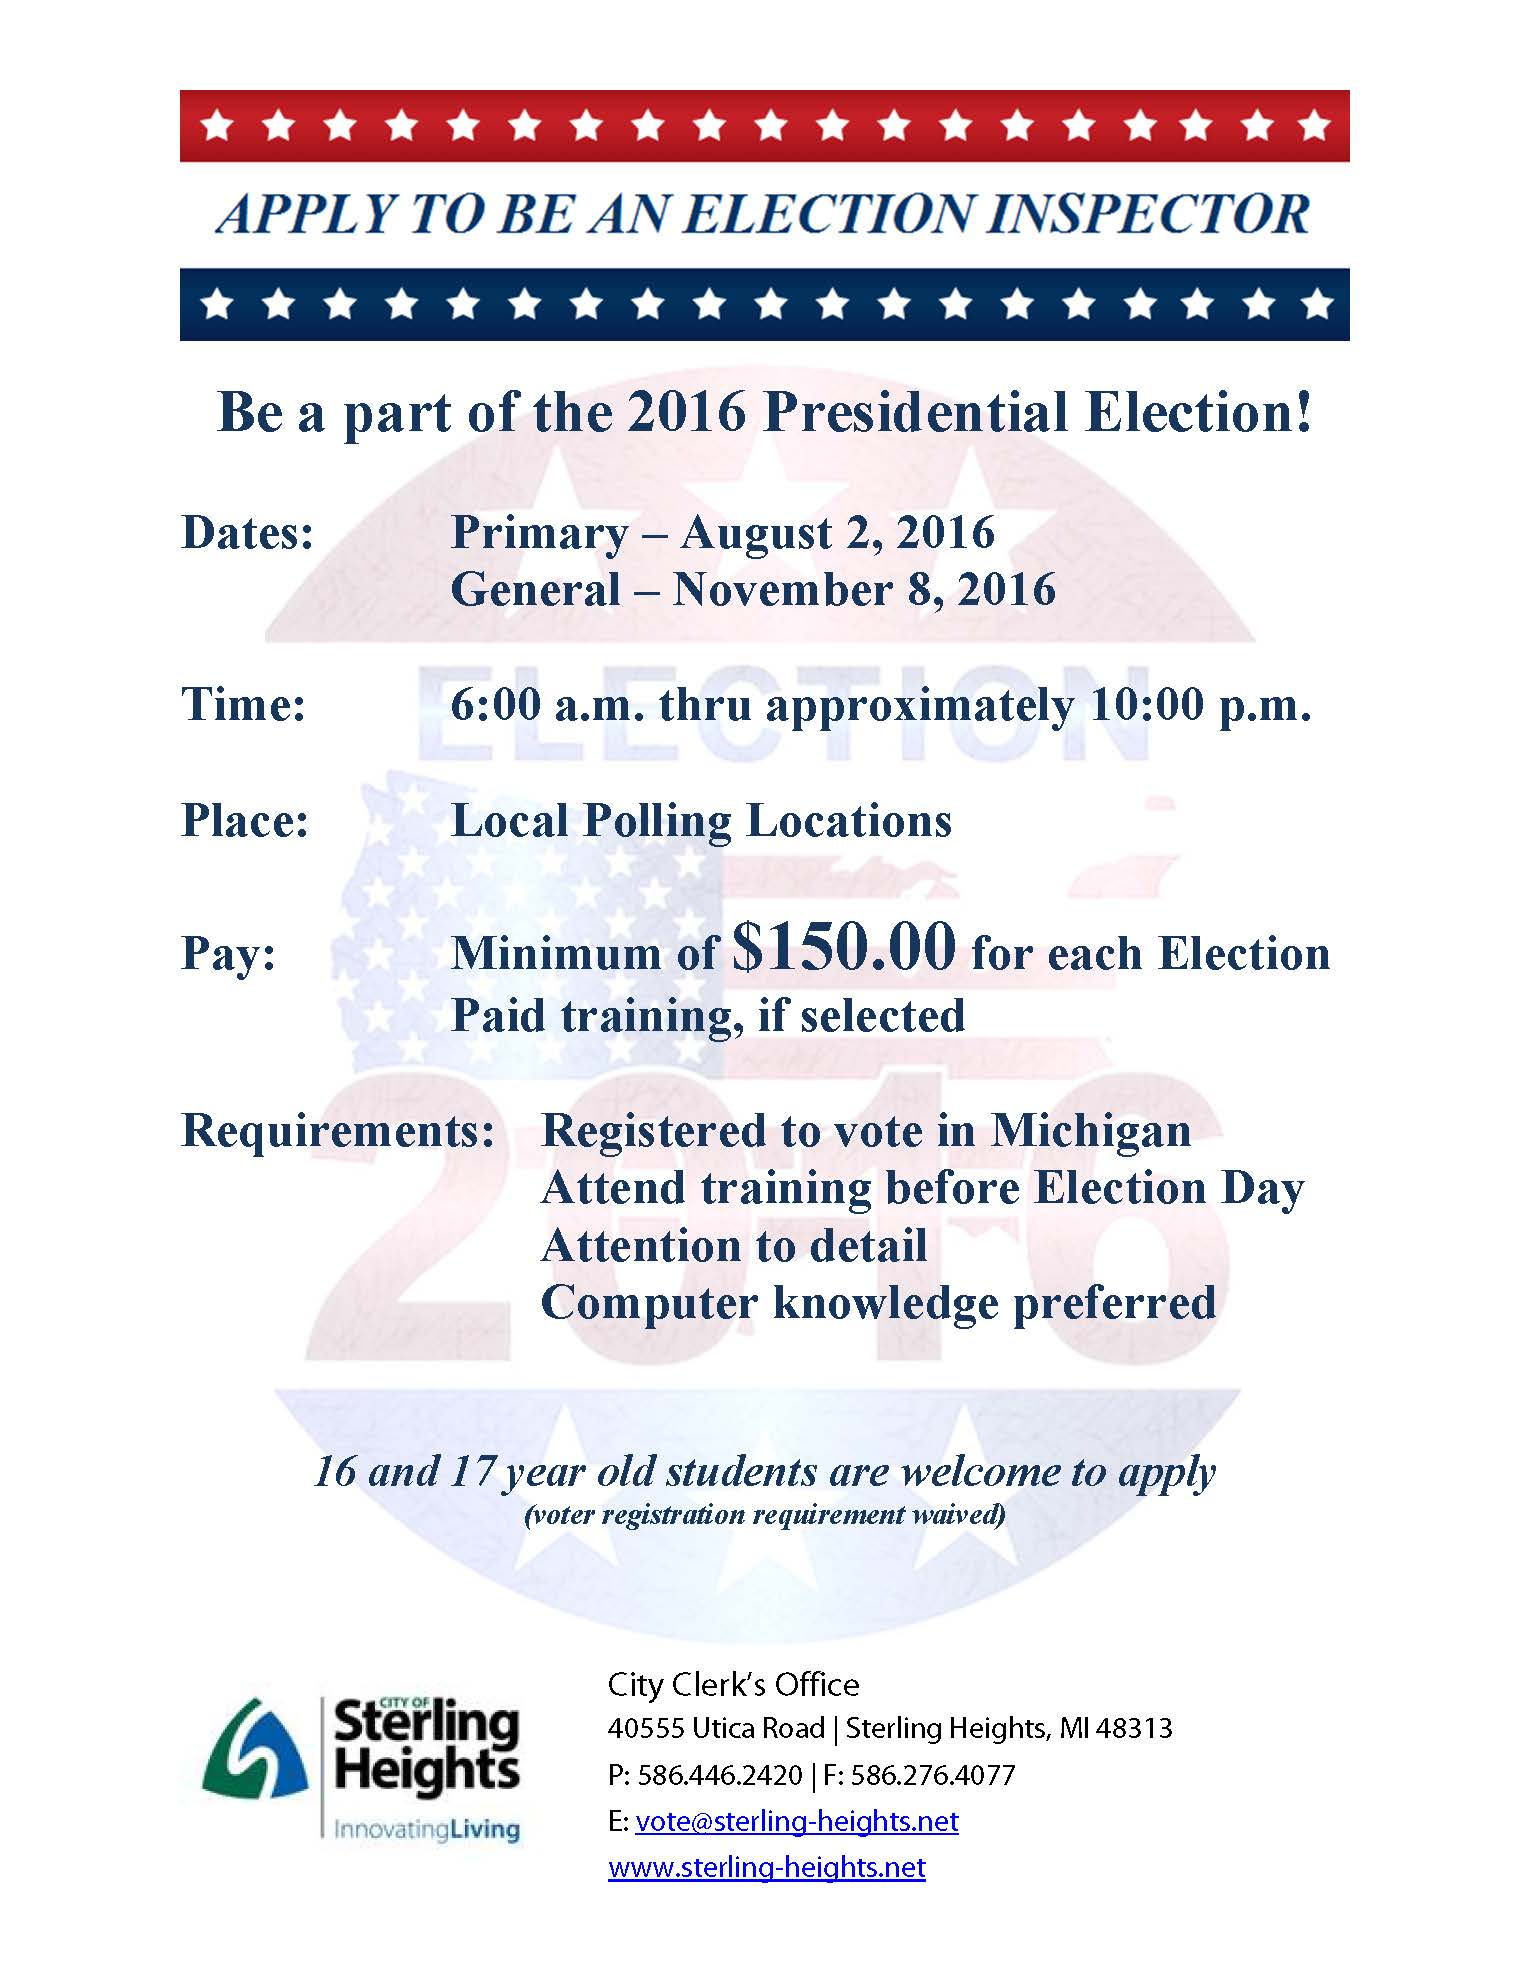 Apply to be an Election Inspector Flyer